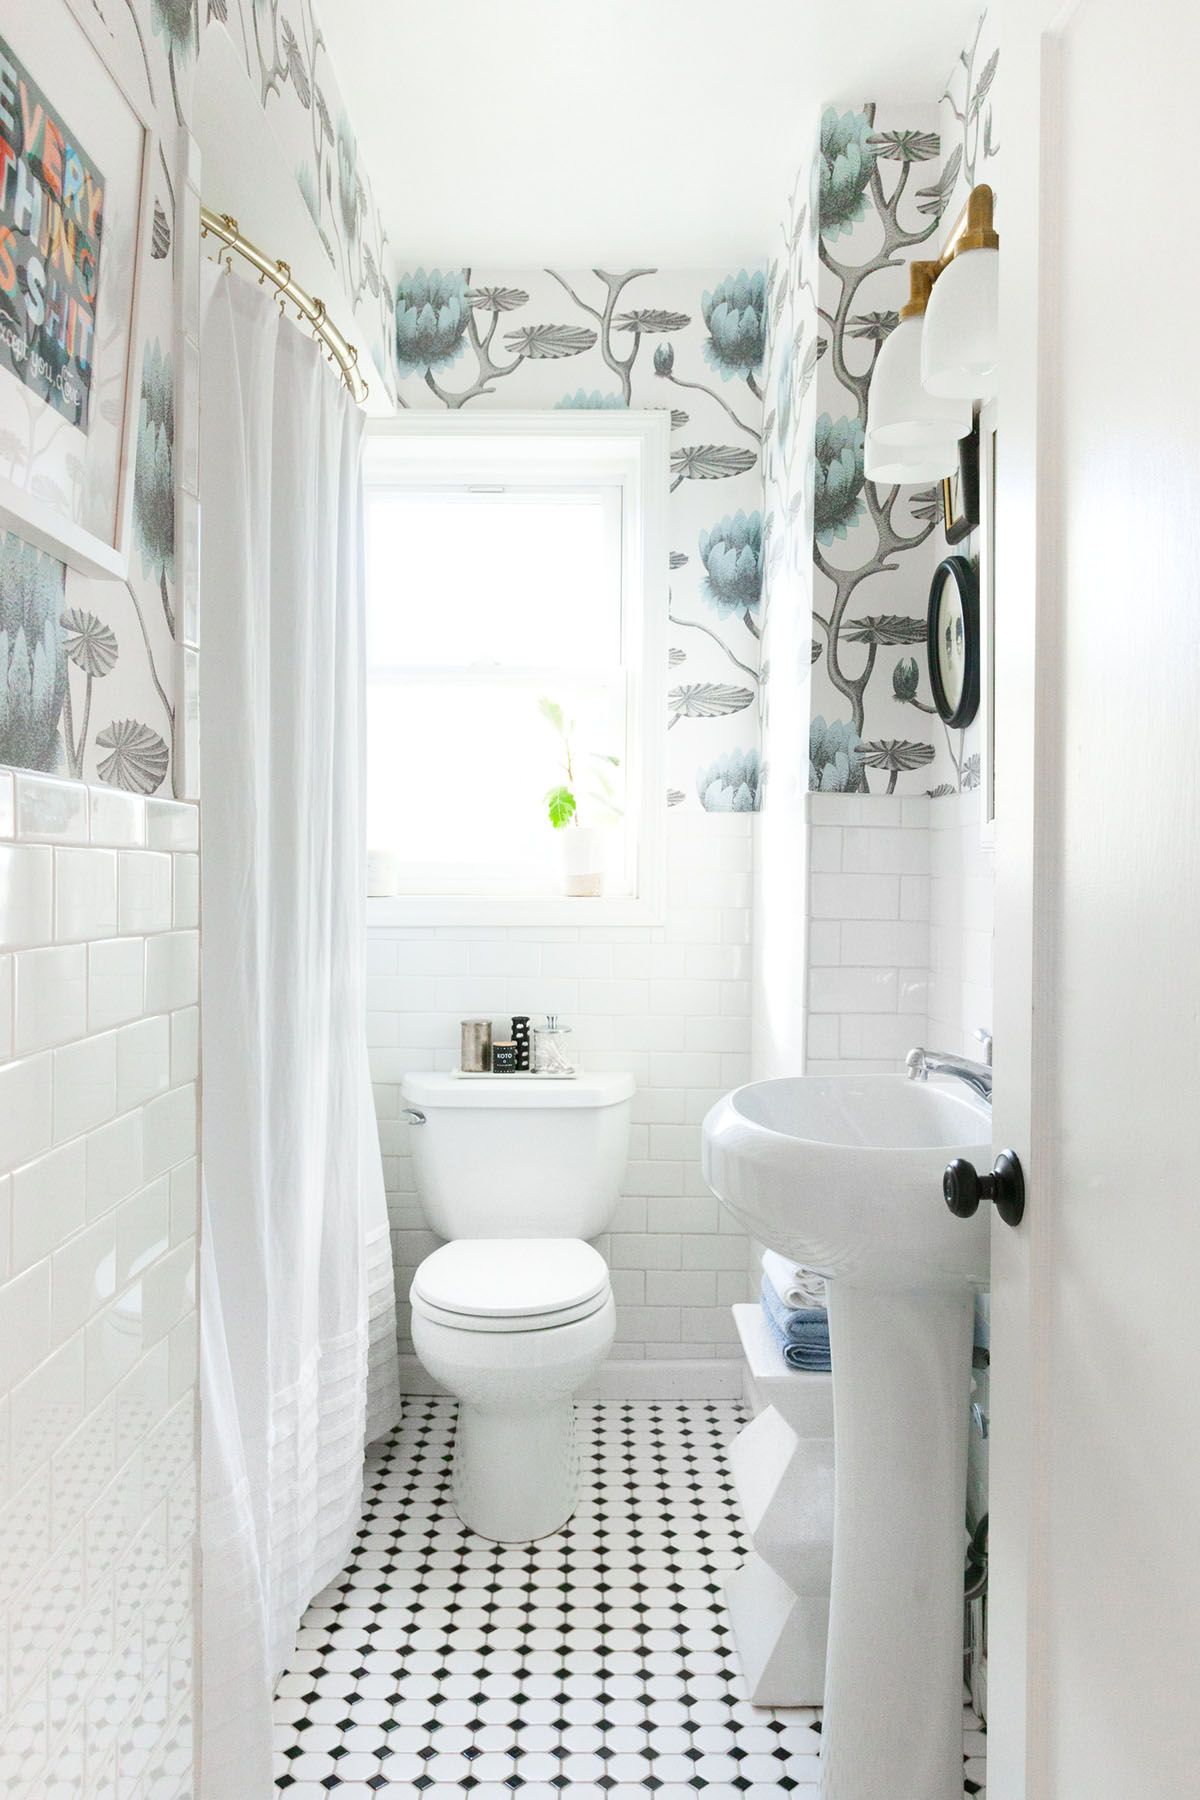 Makeover Reveal :: Our Mini Bathroom Update | bath | Pinterest ...